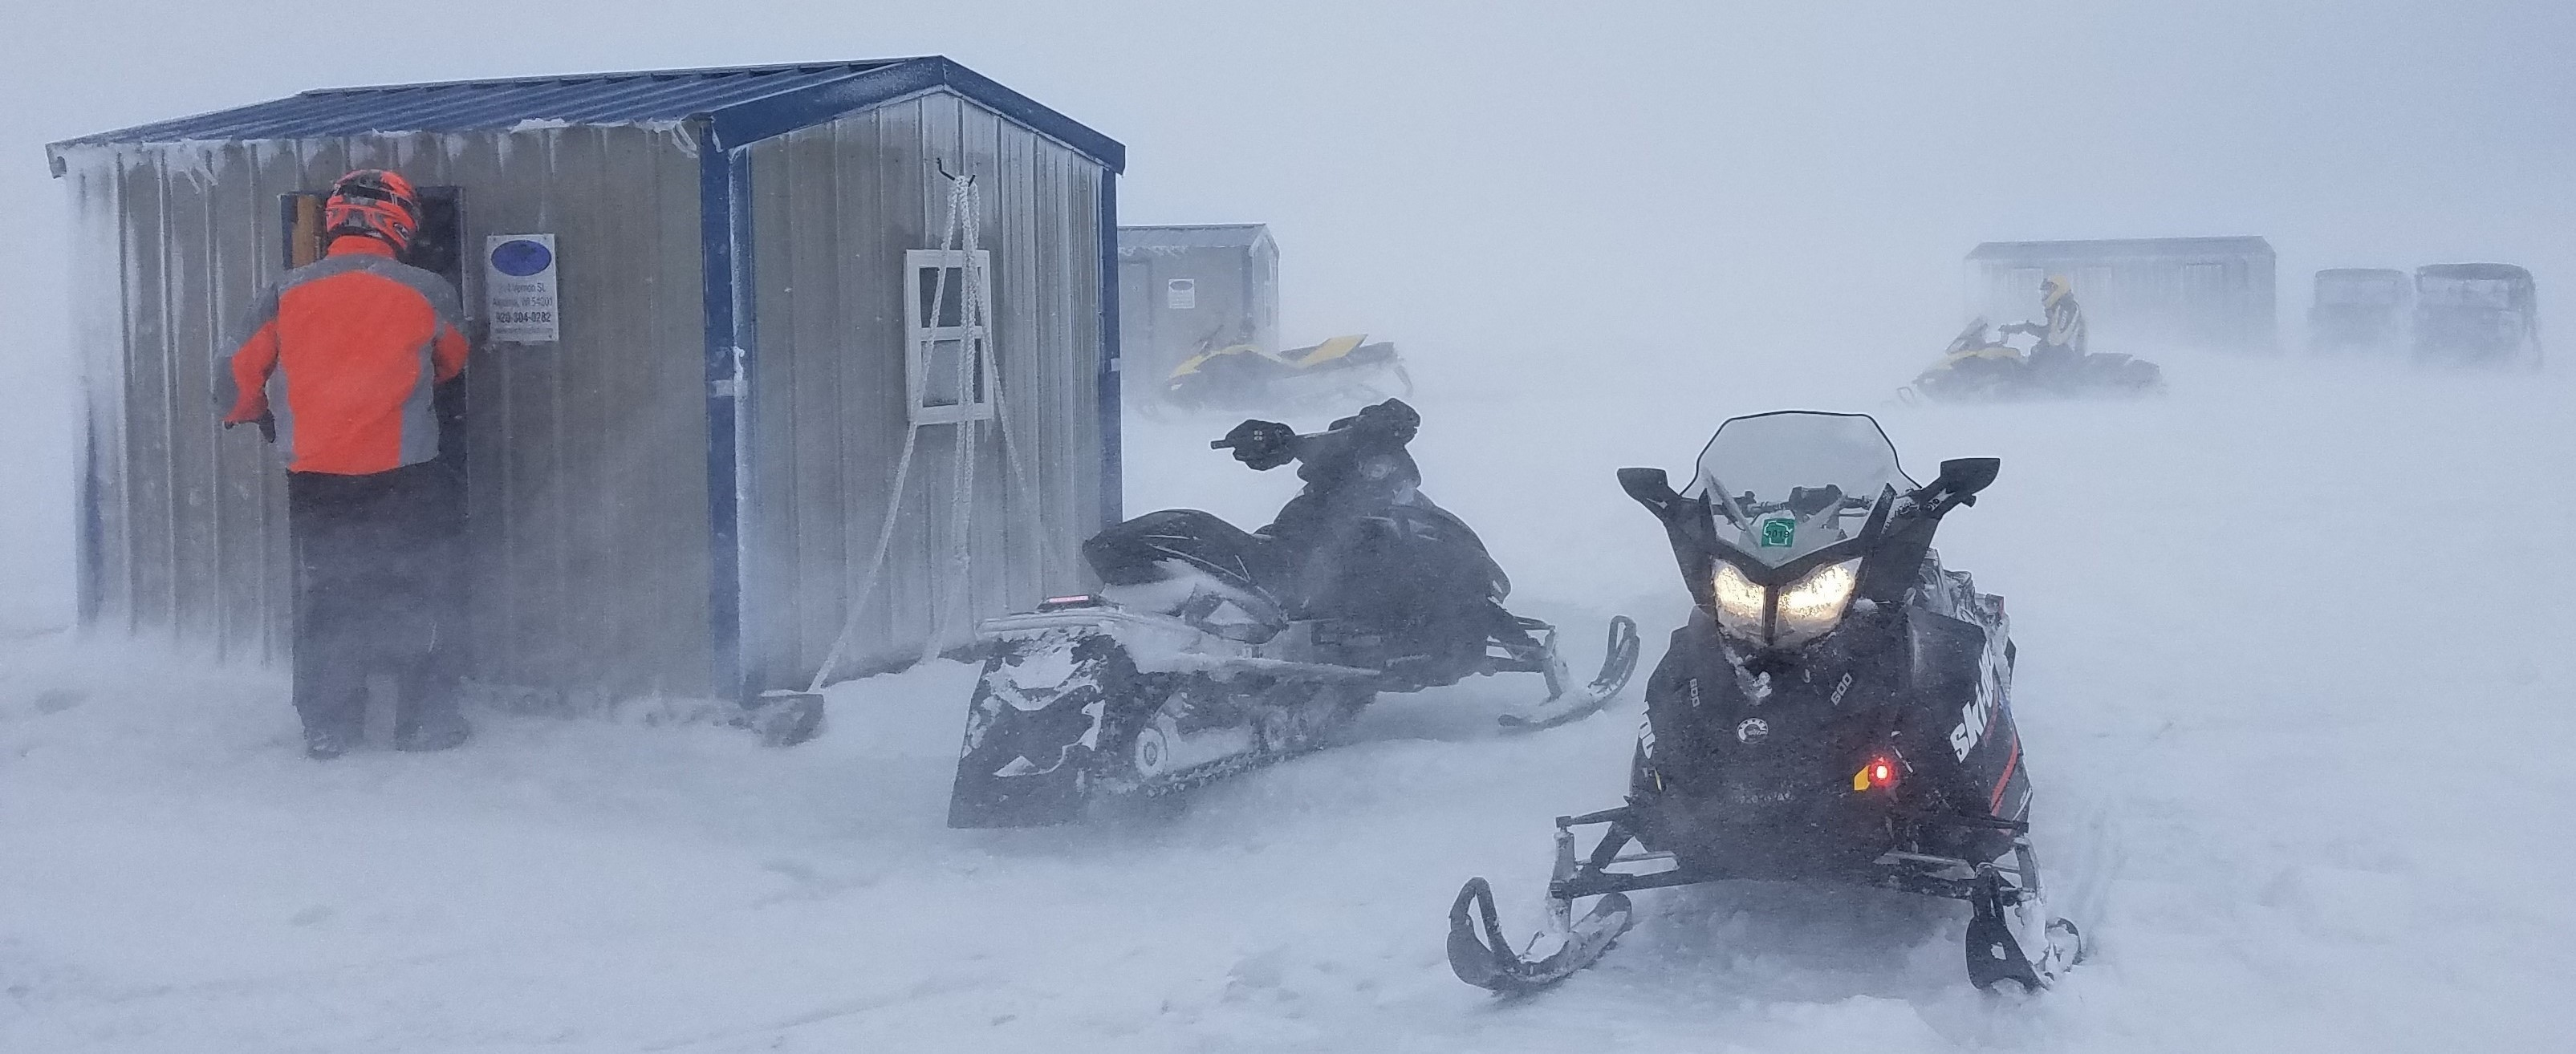 WDNR Wardens check on occupants trapped in ice shanties during Sunday's white-out storm on Bay of Green Bay. February 24